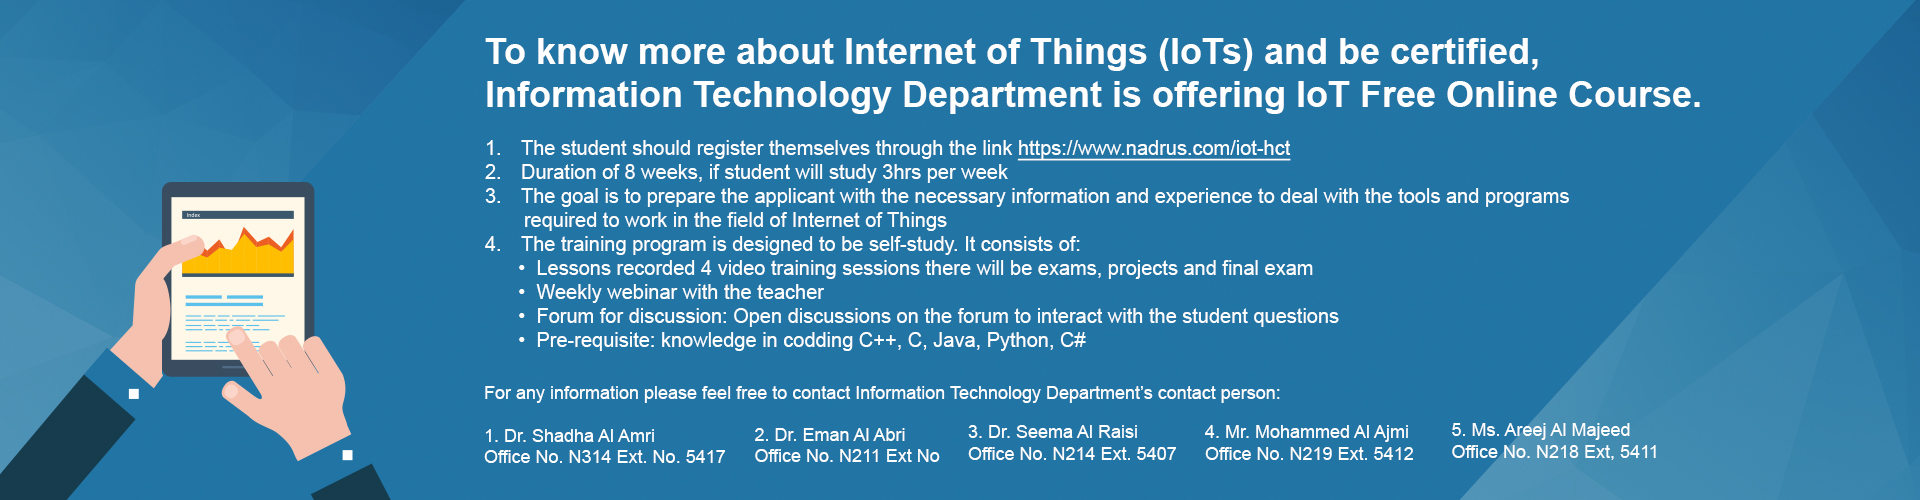 IoT Free Online Course